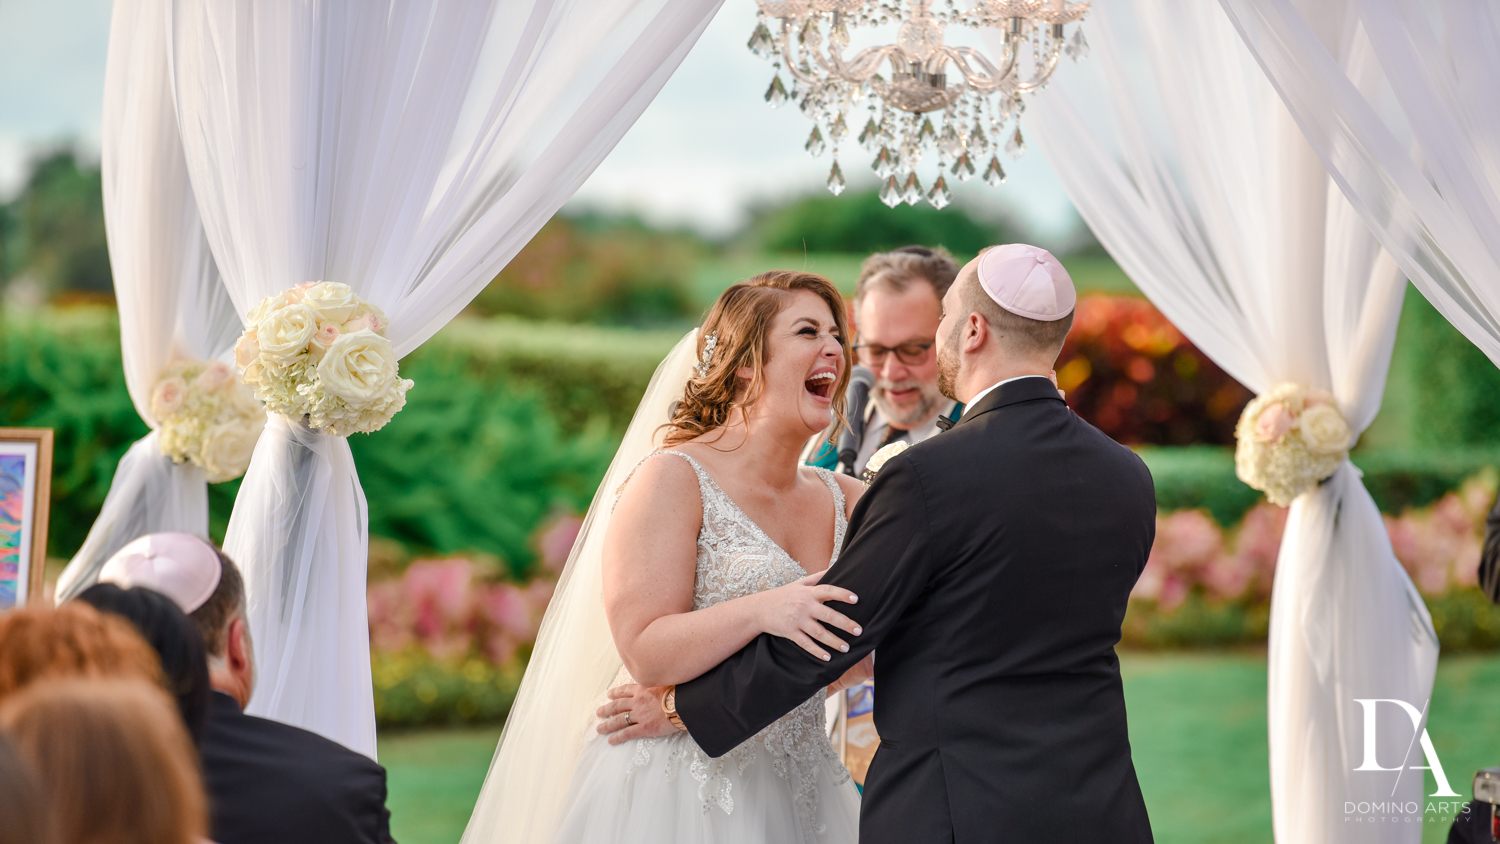 Fun candid pics at Romantic Outdoors Wedding at Woodfield Country Club in Boca Raton, Florida by Domino Arts Photography